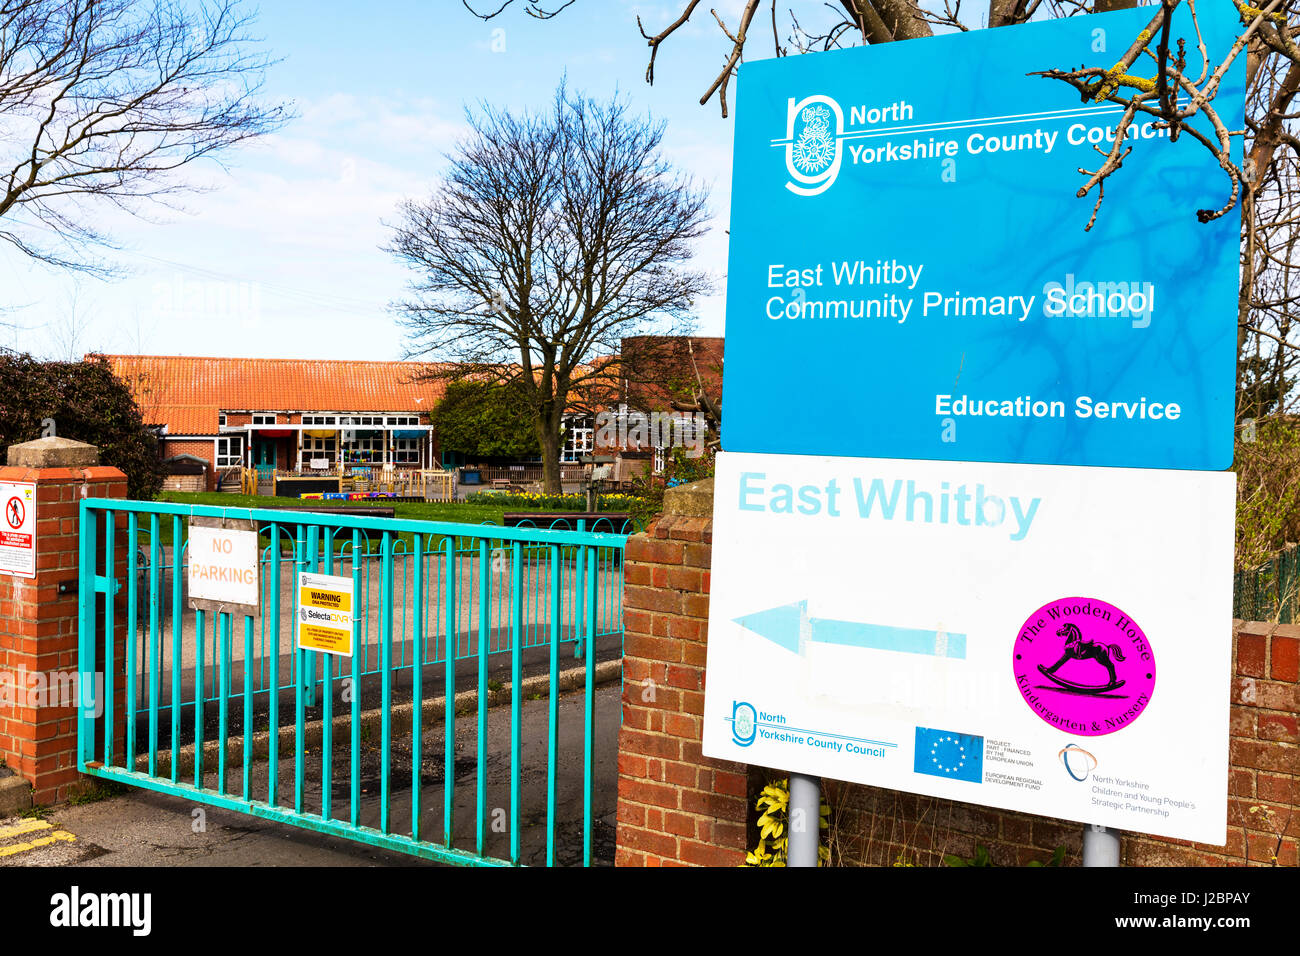 East Whitby Community primary school sign Primary school building exterior school gates school sign UK England Primary - Stock Image